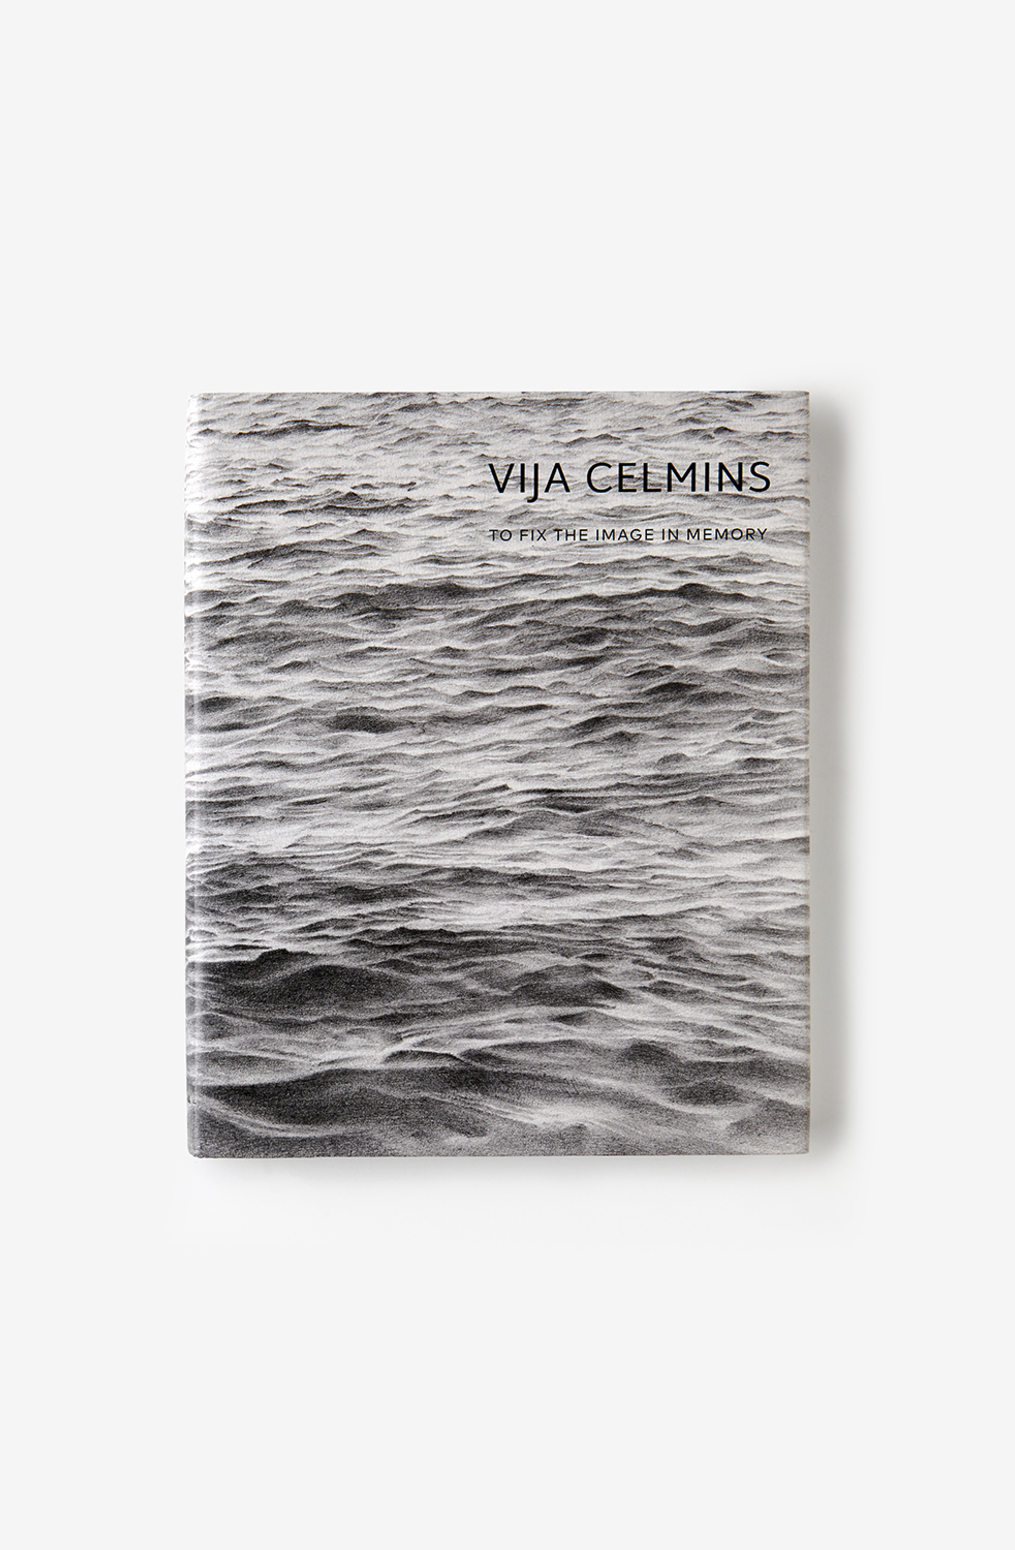 Alabama chanin vija celmins to fix the image in memory book 1